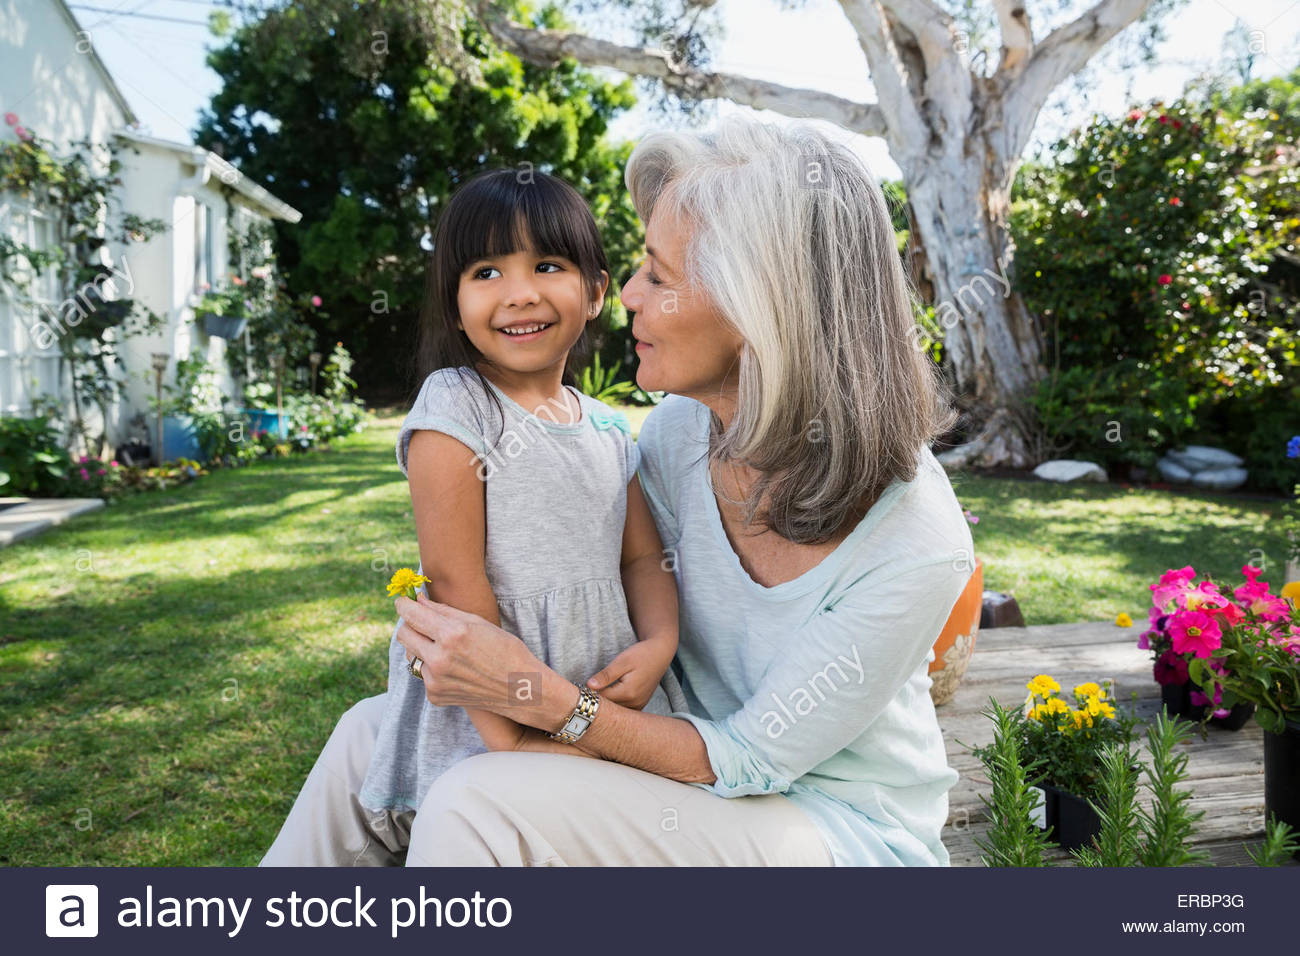 Granddaughter and grandmother hugging in backyard garden - Stock Image